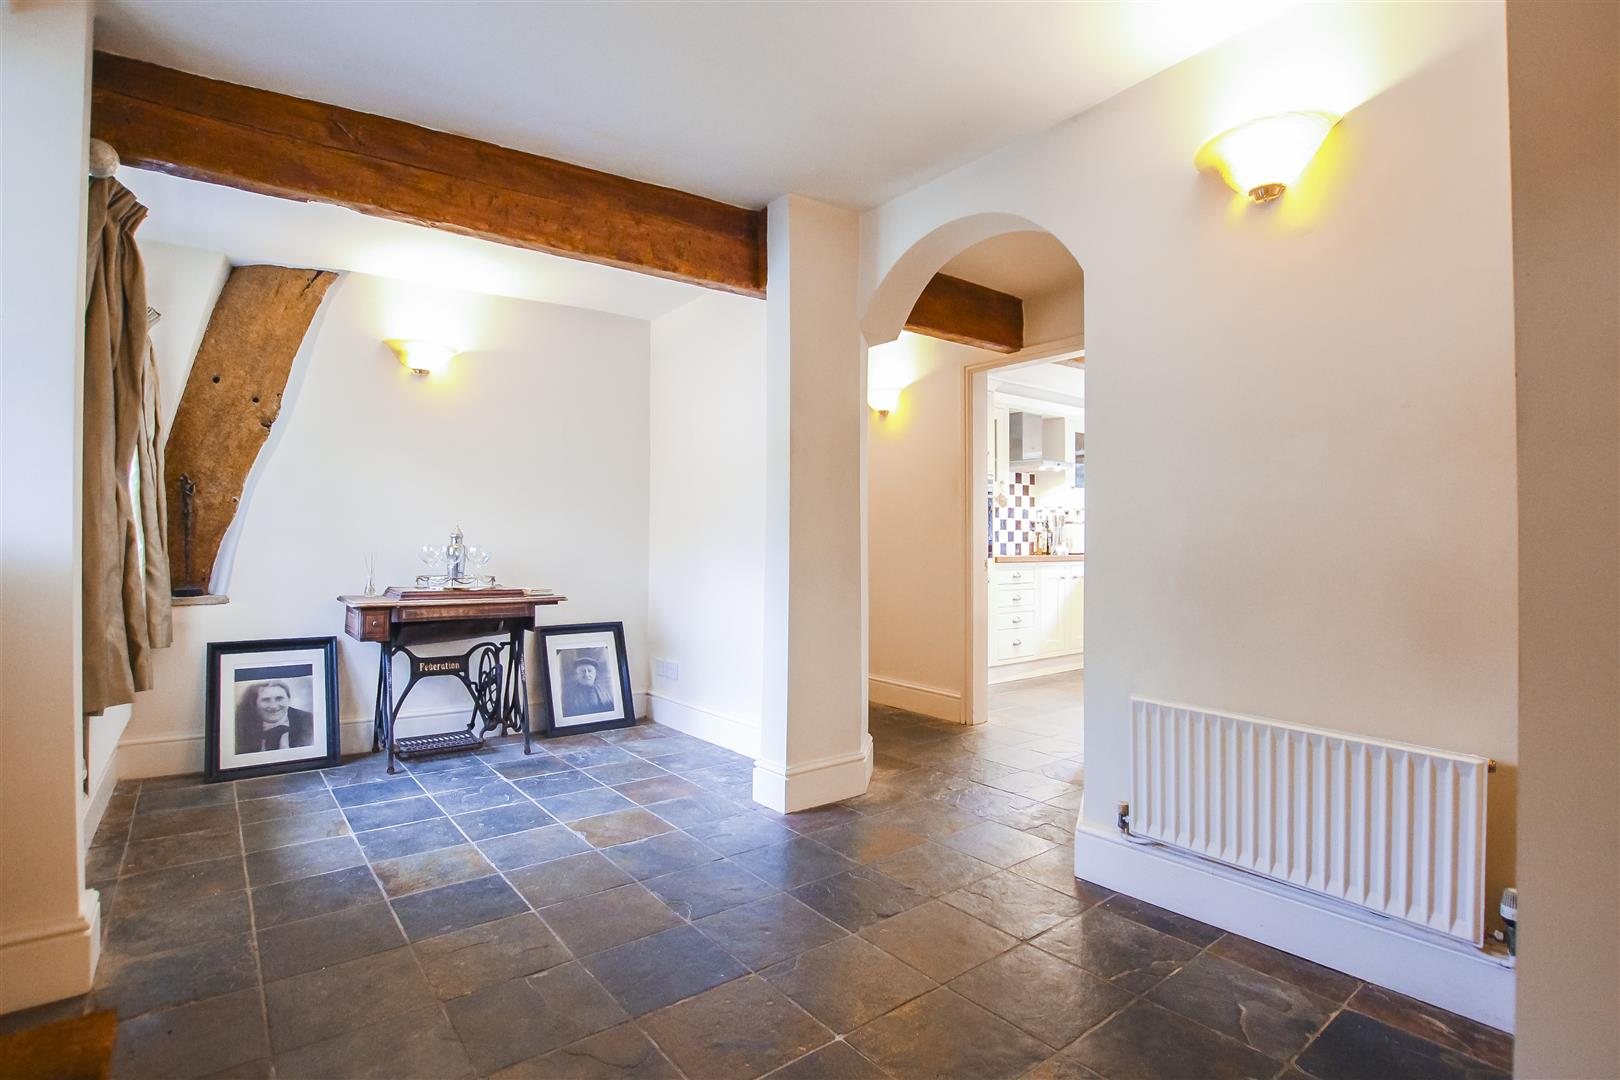 4 Bedroom Farmhouse For Sale - Image 34